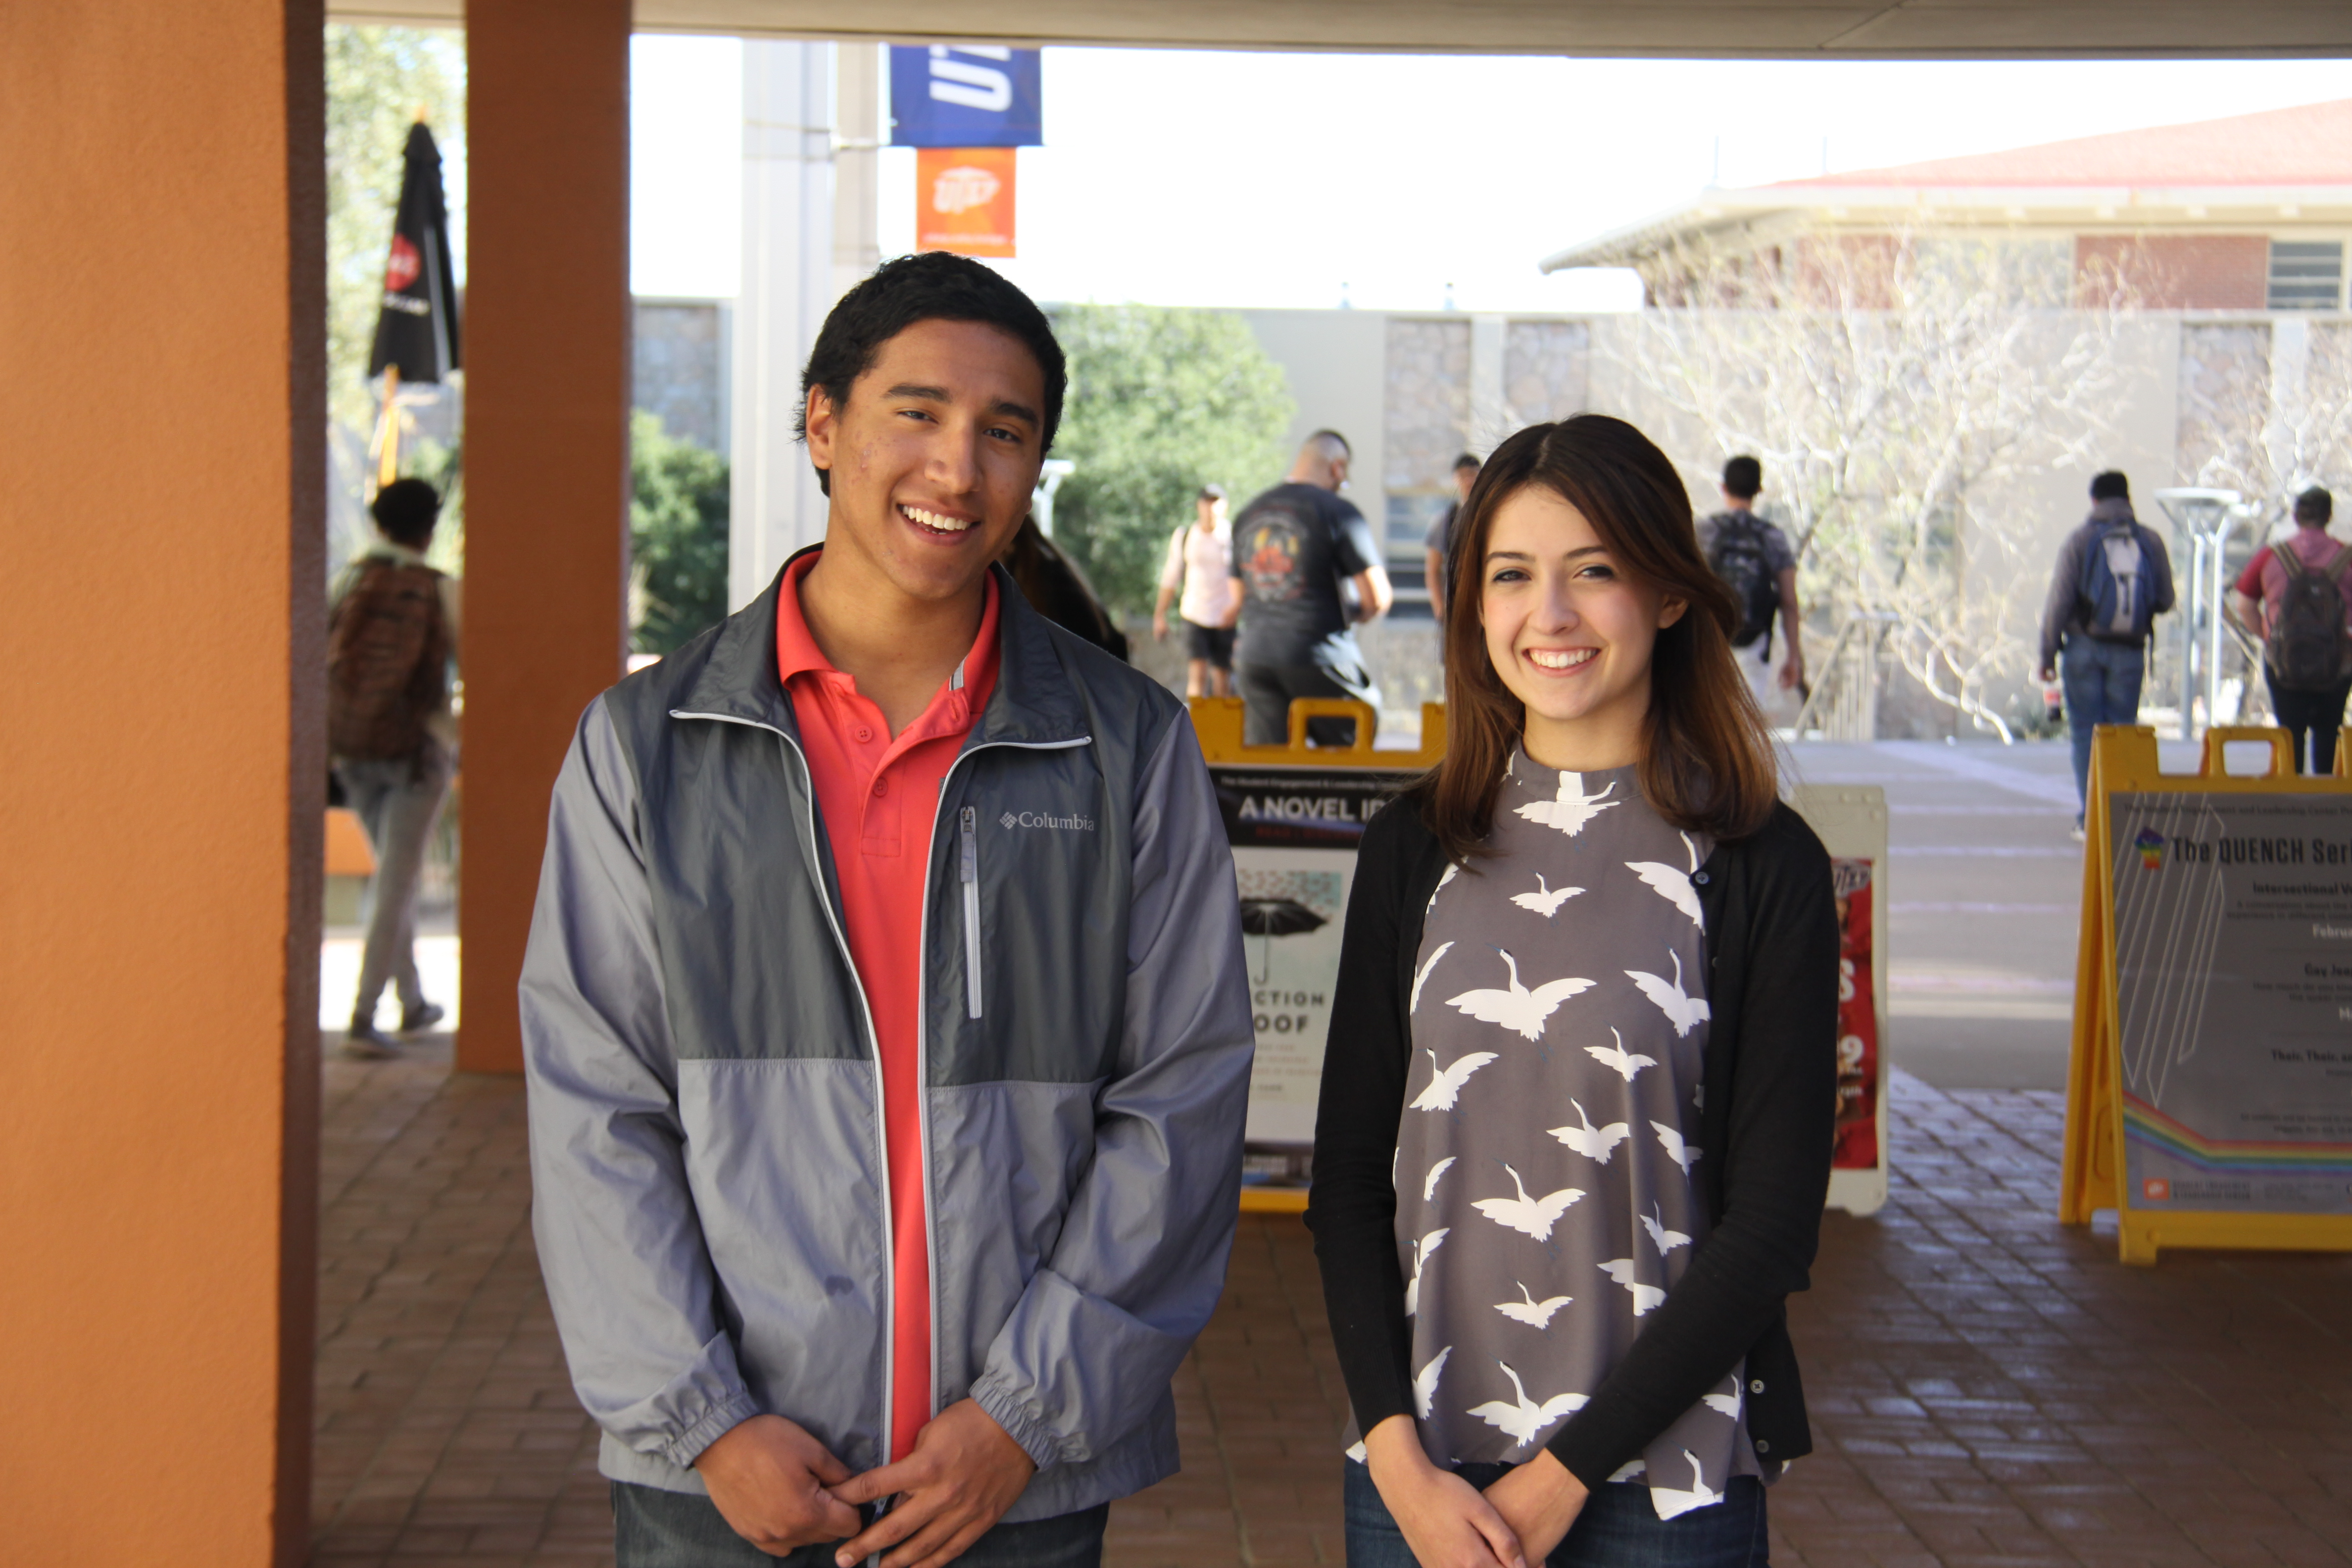 Two college students smile at the camera.